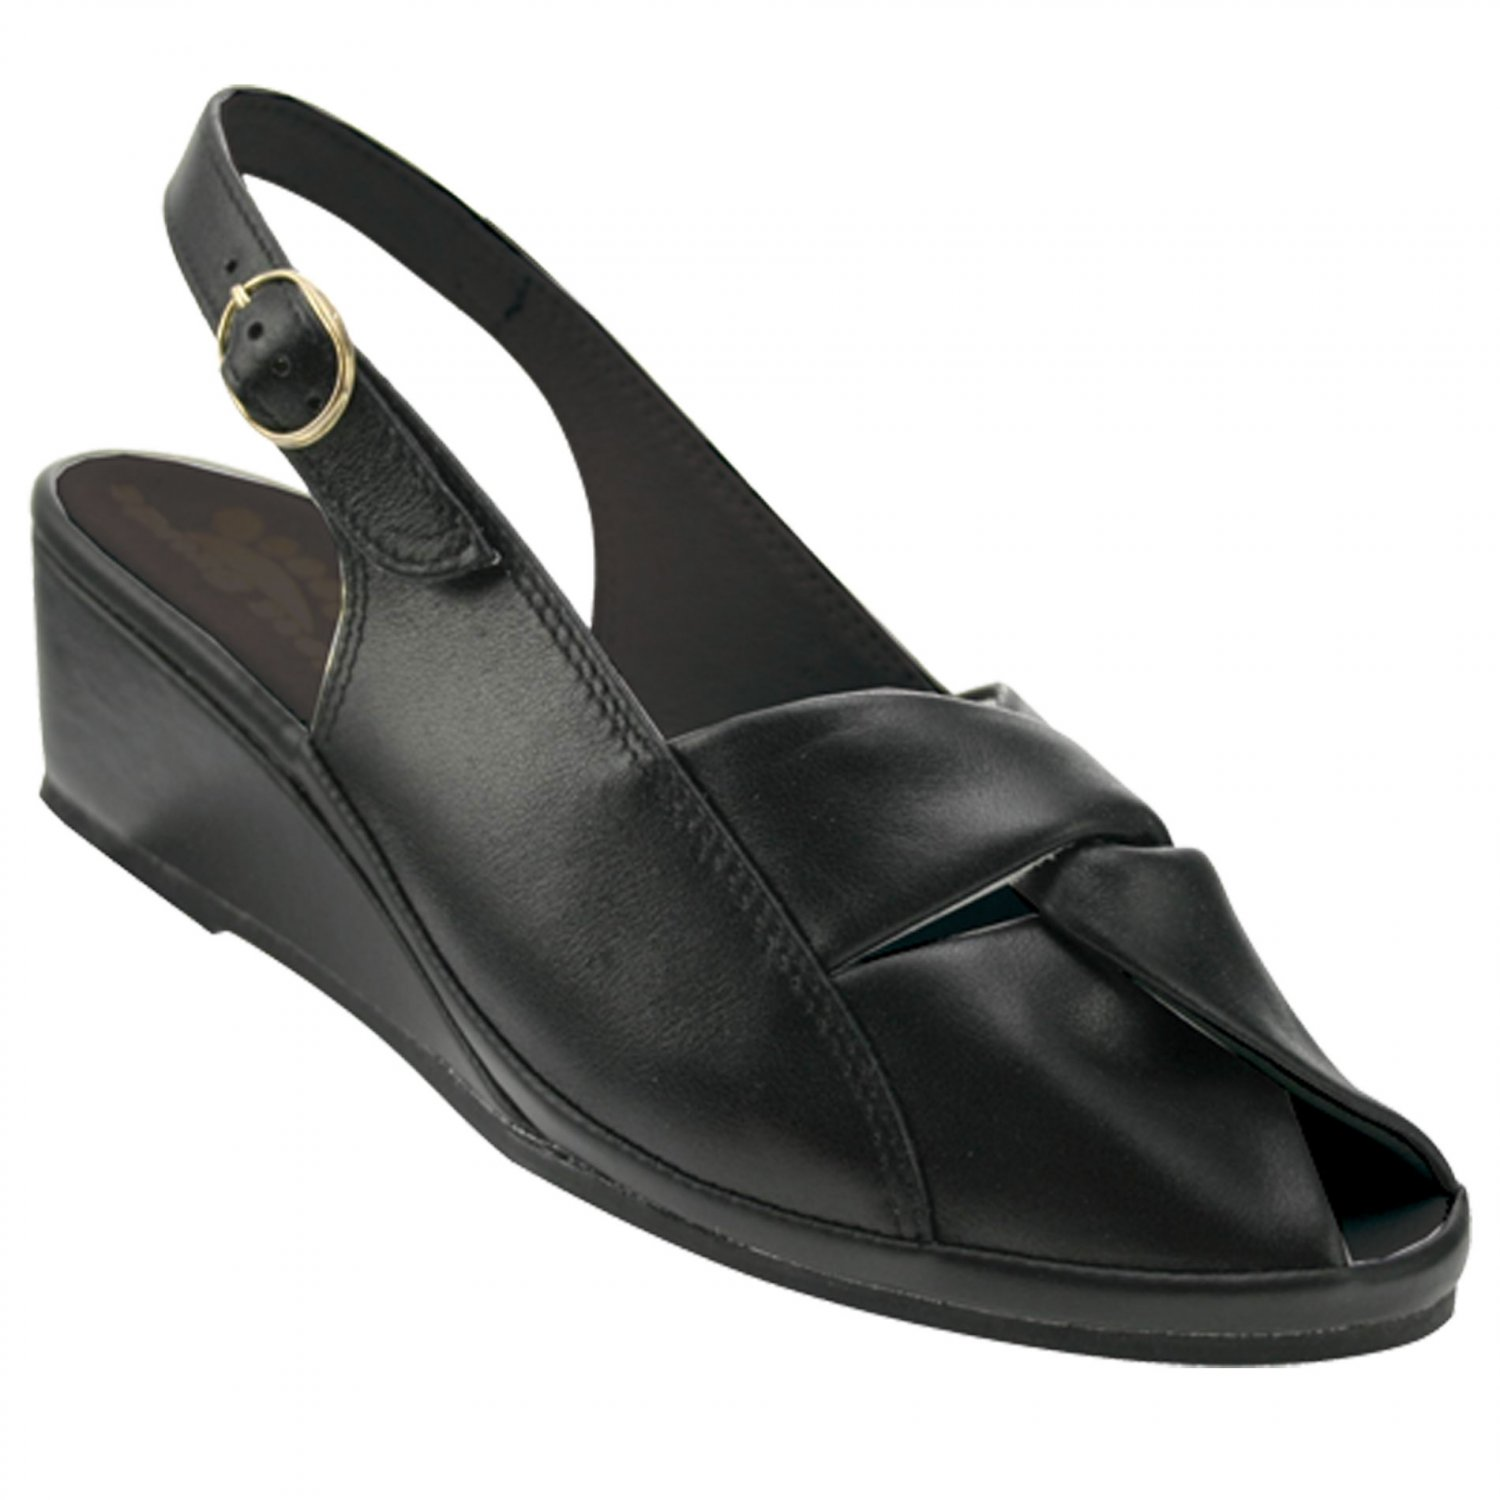 Spring Step YVONNE Sandals Shoes All Sizes & Colors $6